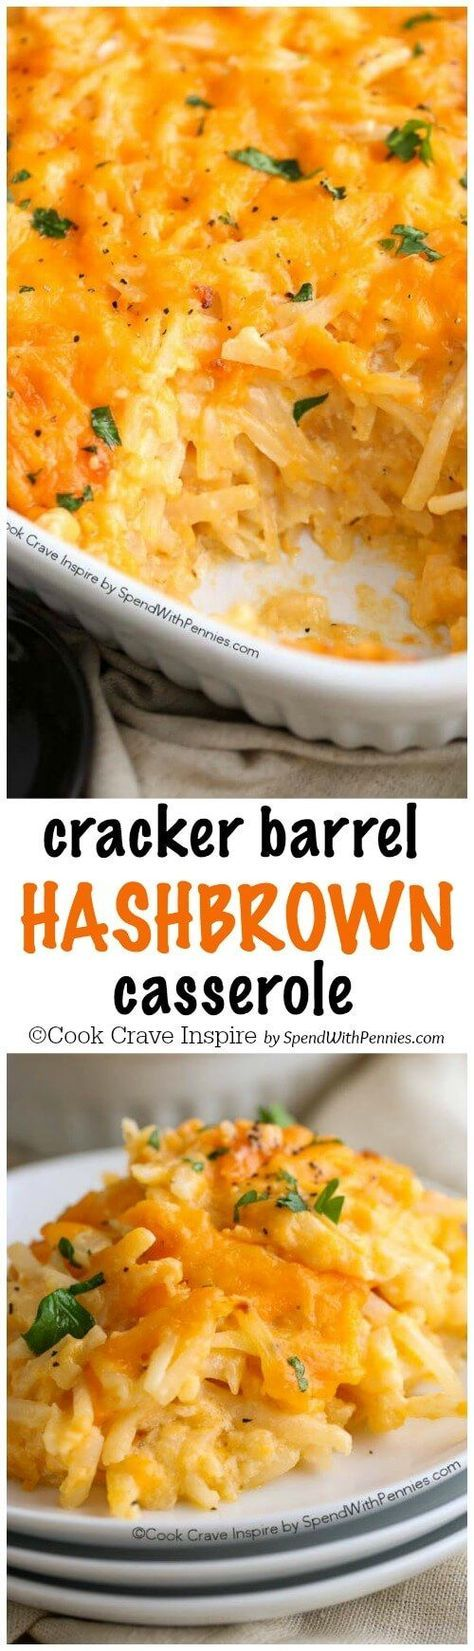 This is my favorite casserole ever! Copy Cat Cracker Barrel casserole needs just 5 minutes of prep and is absolutely cheesy, delicious and completely irresistible! The perfect breakfast casserole!